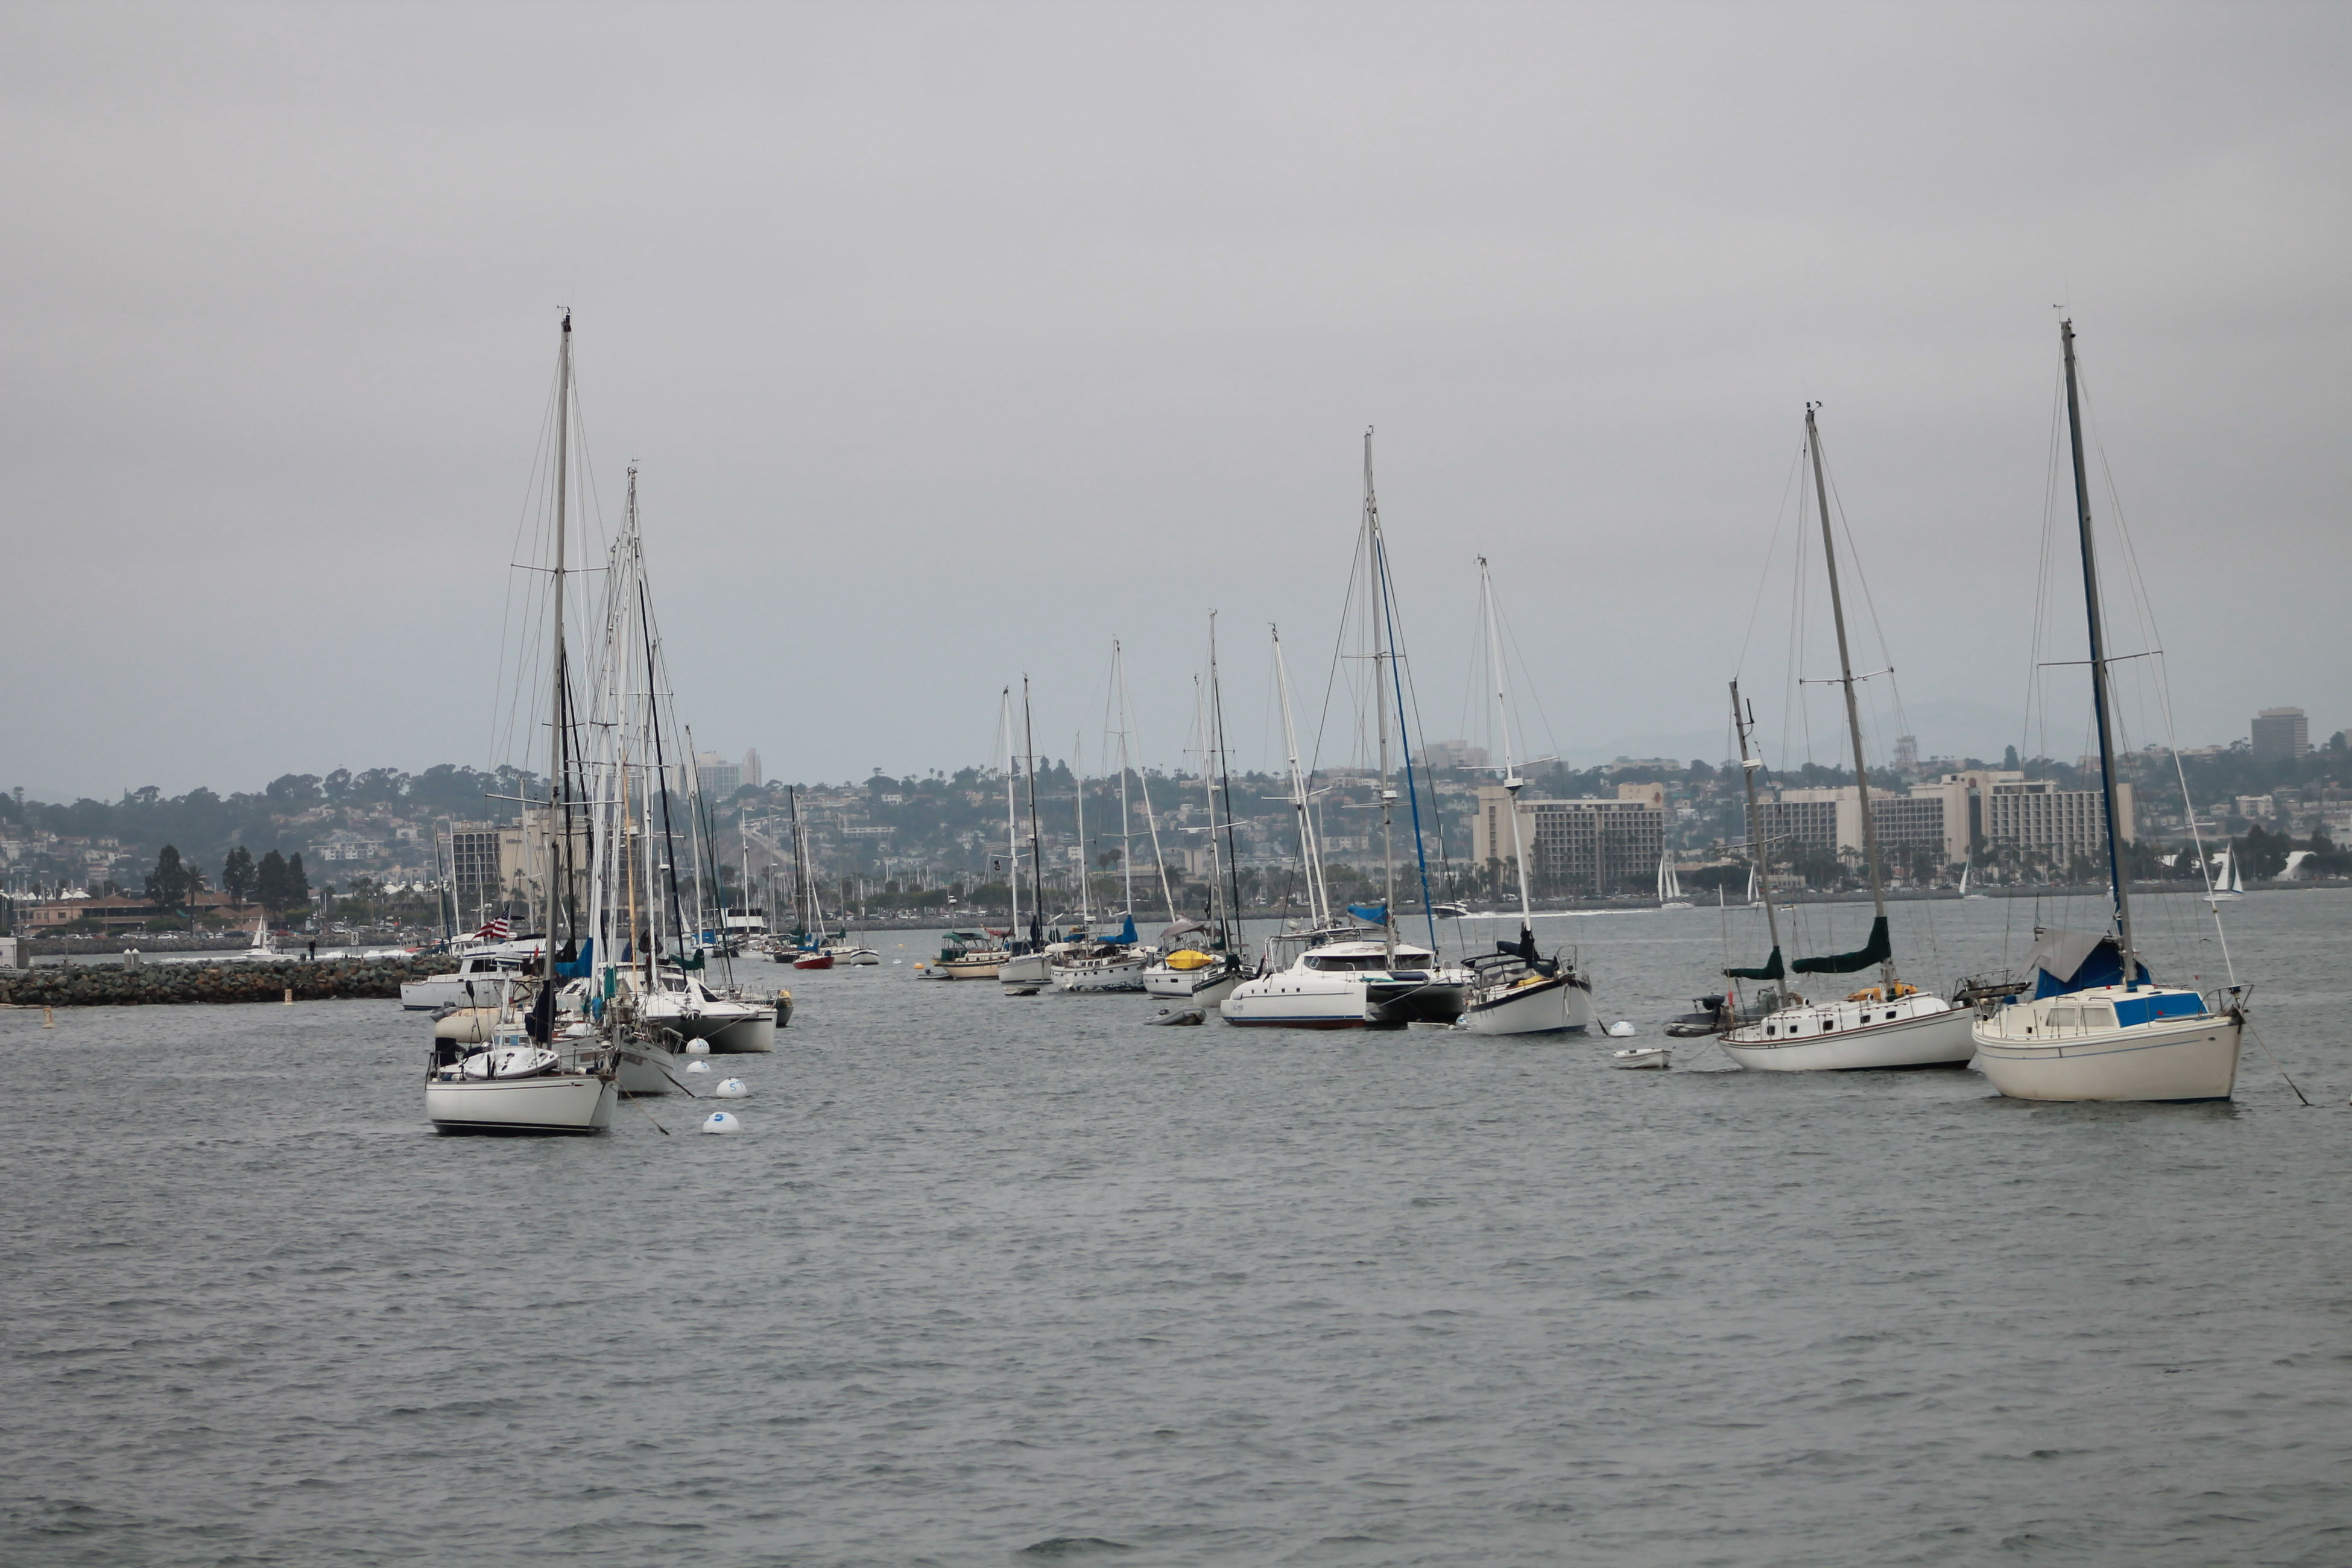 Sail Away Beautiful Day Beautiful Sail Boats Beauty Of The Bay Relaxing Sail Boats San Diego In Background Summer Time Get Together